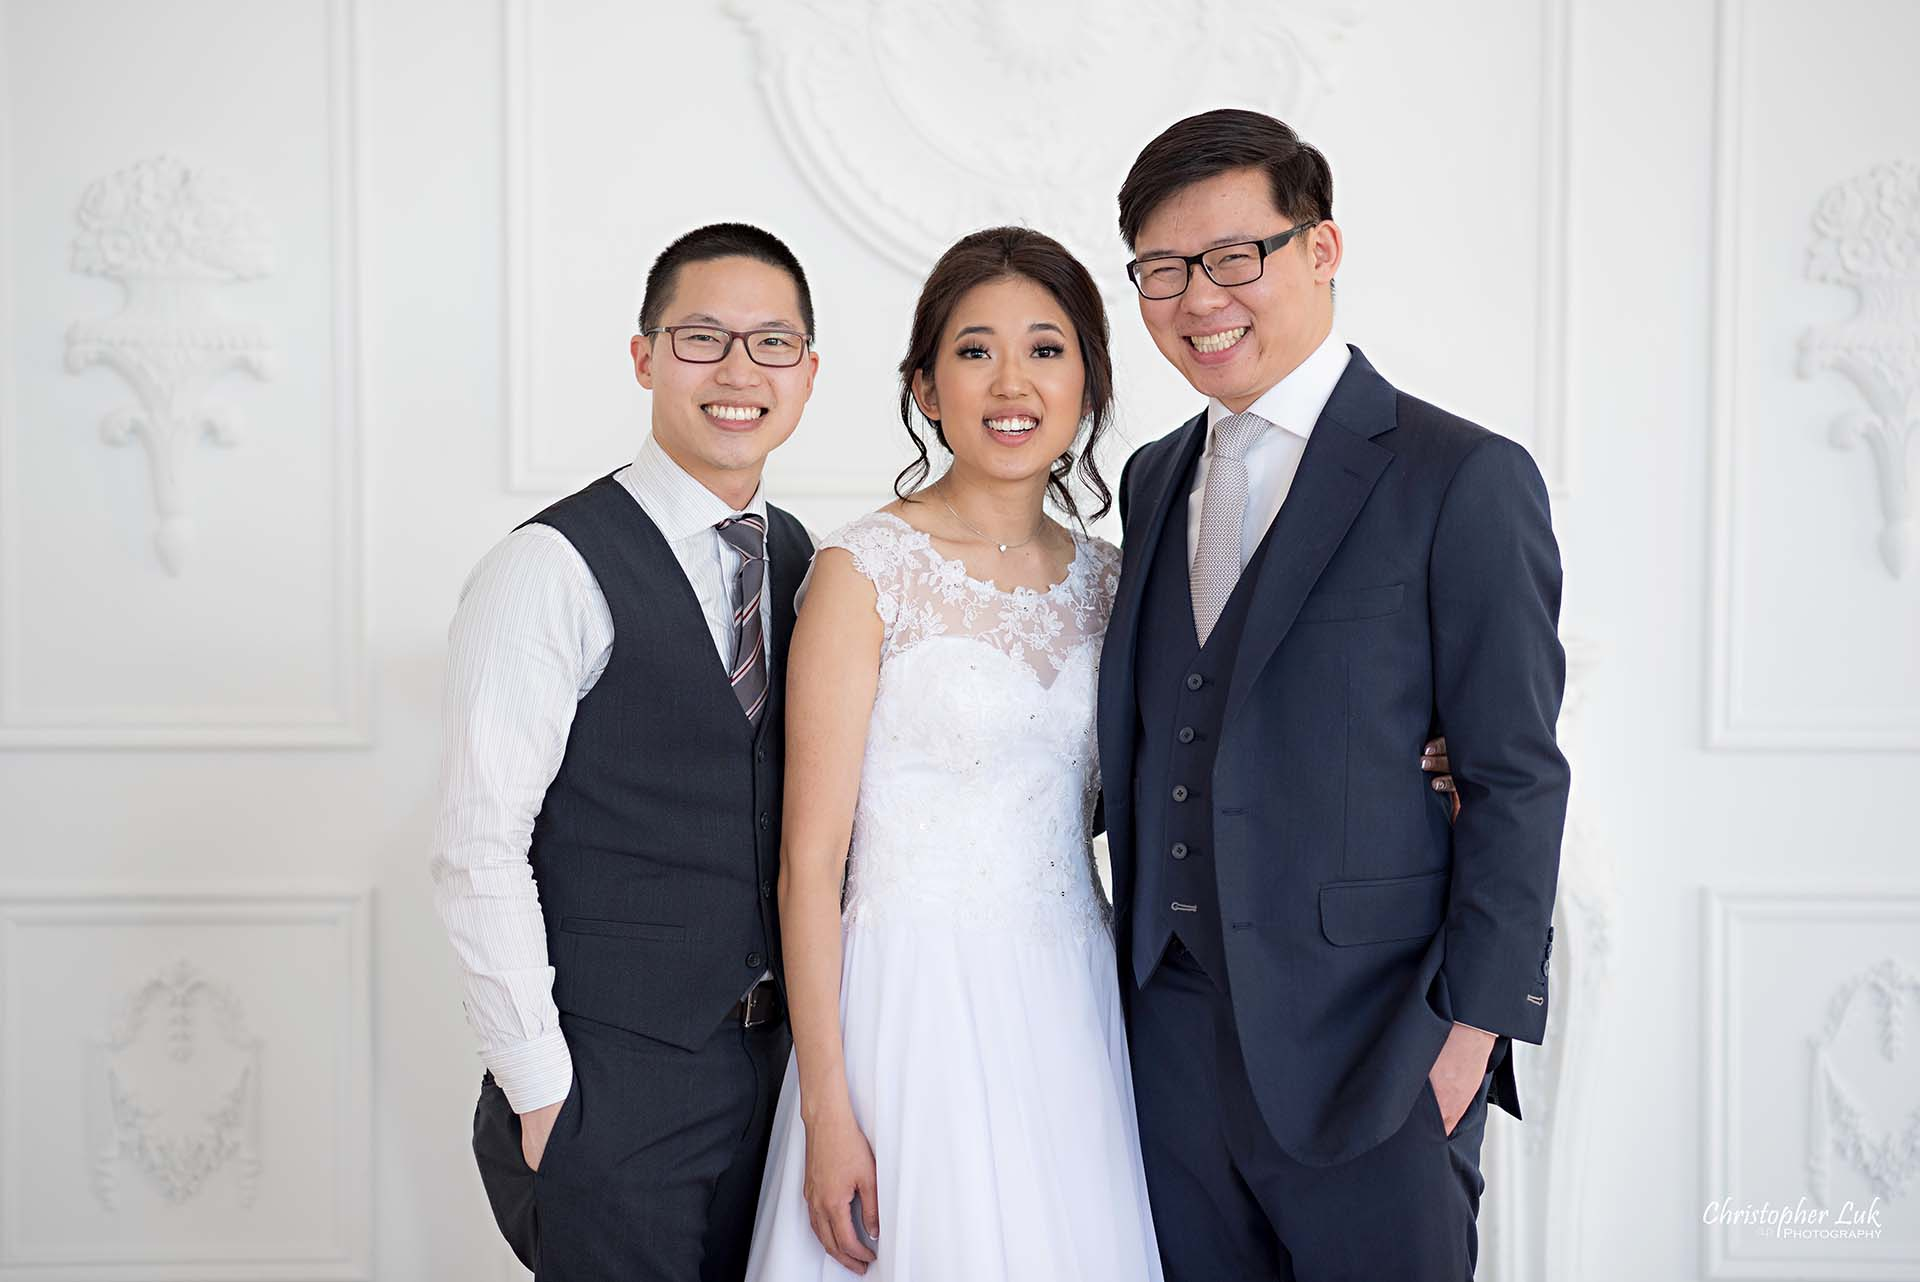 Christopher Luk Toronto Wedding Photographer - Mint Room Studios Bride and Groom Conservatory Ballroom